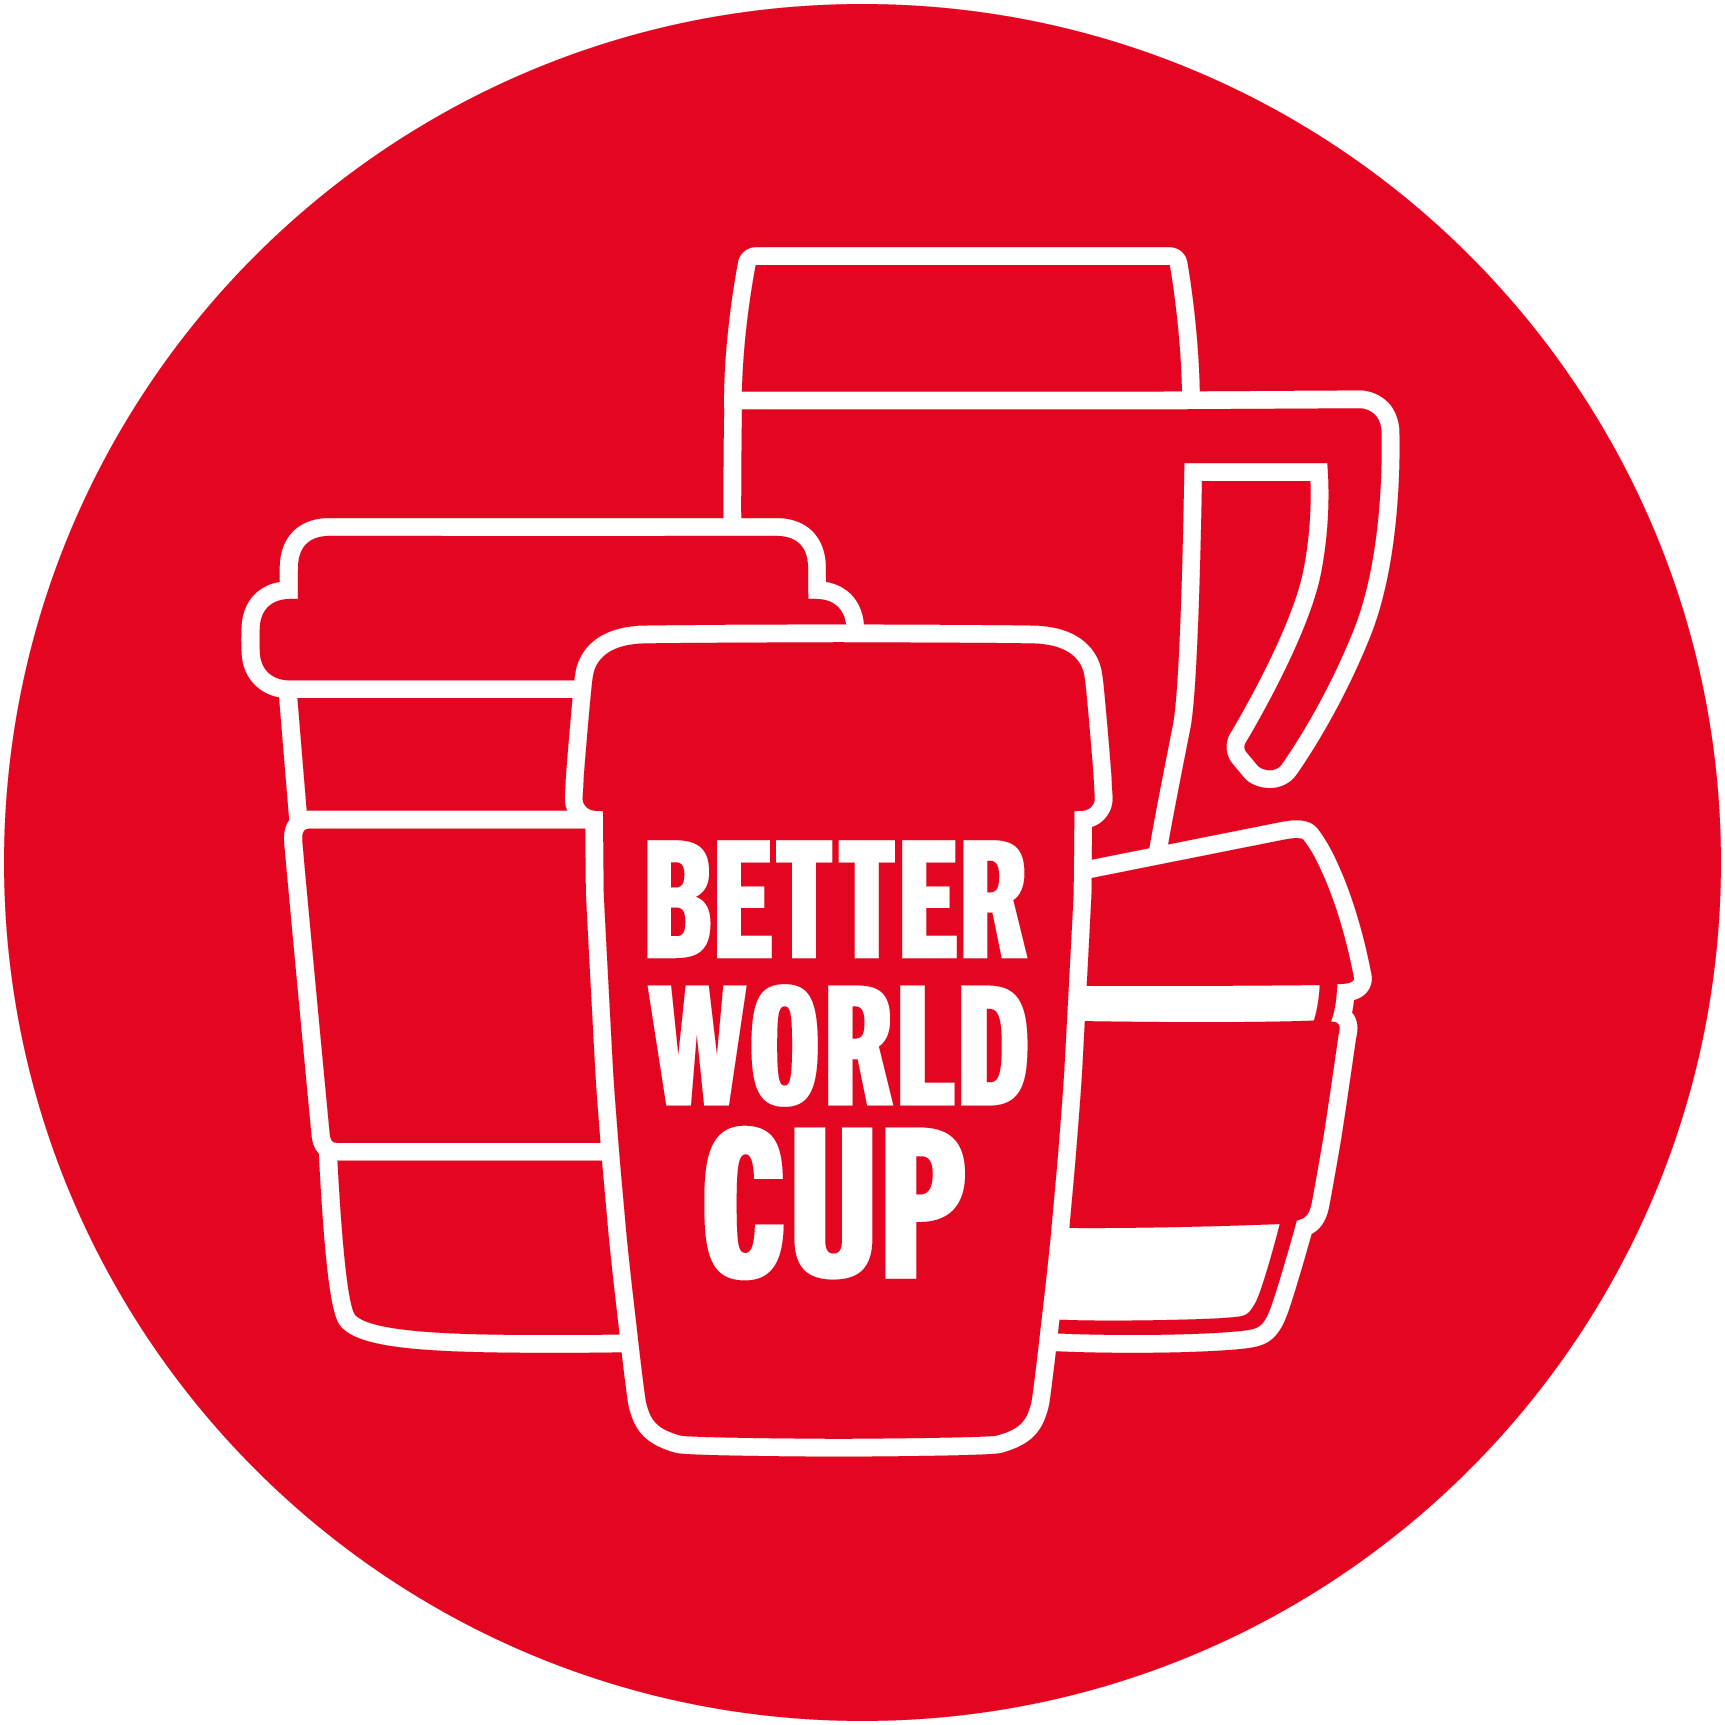 Better World Cup